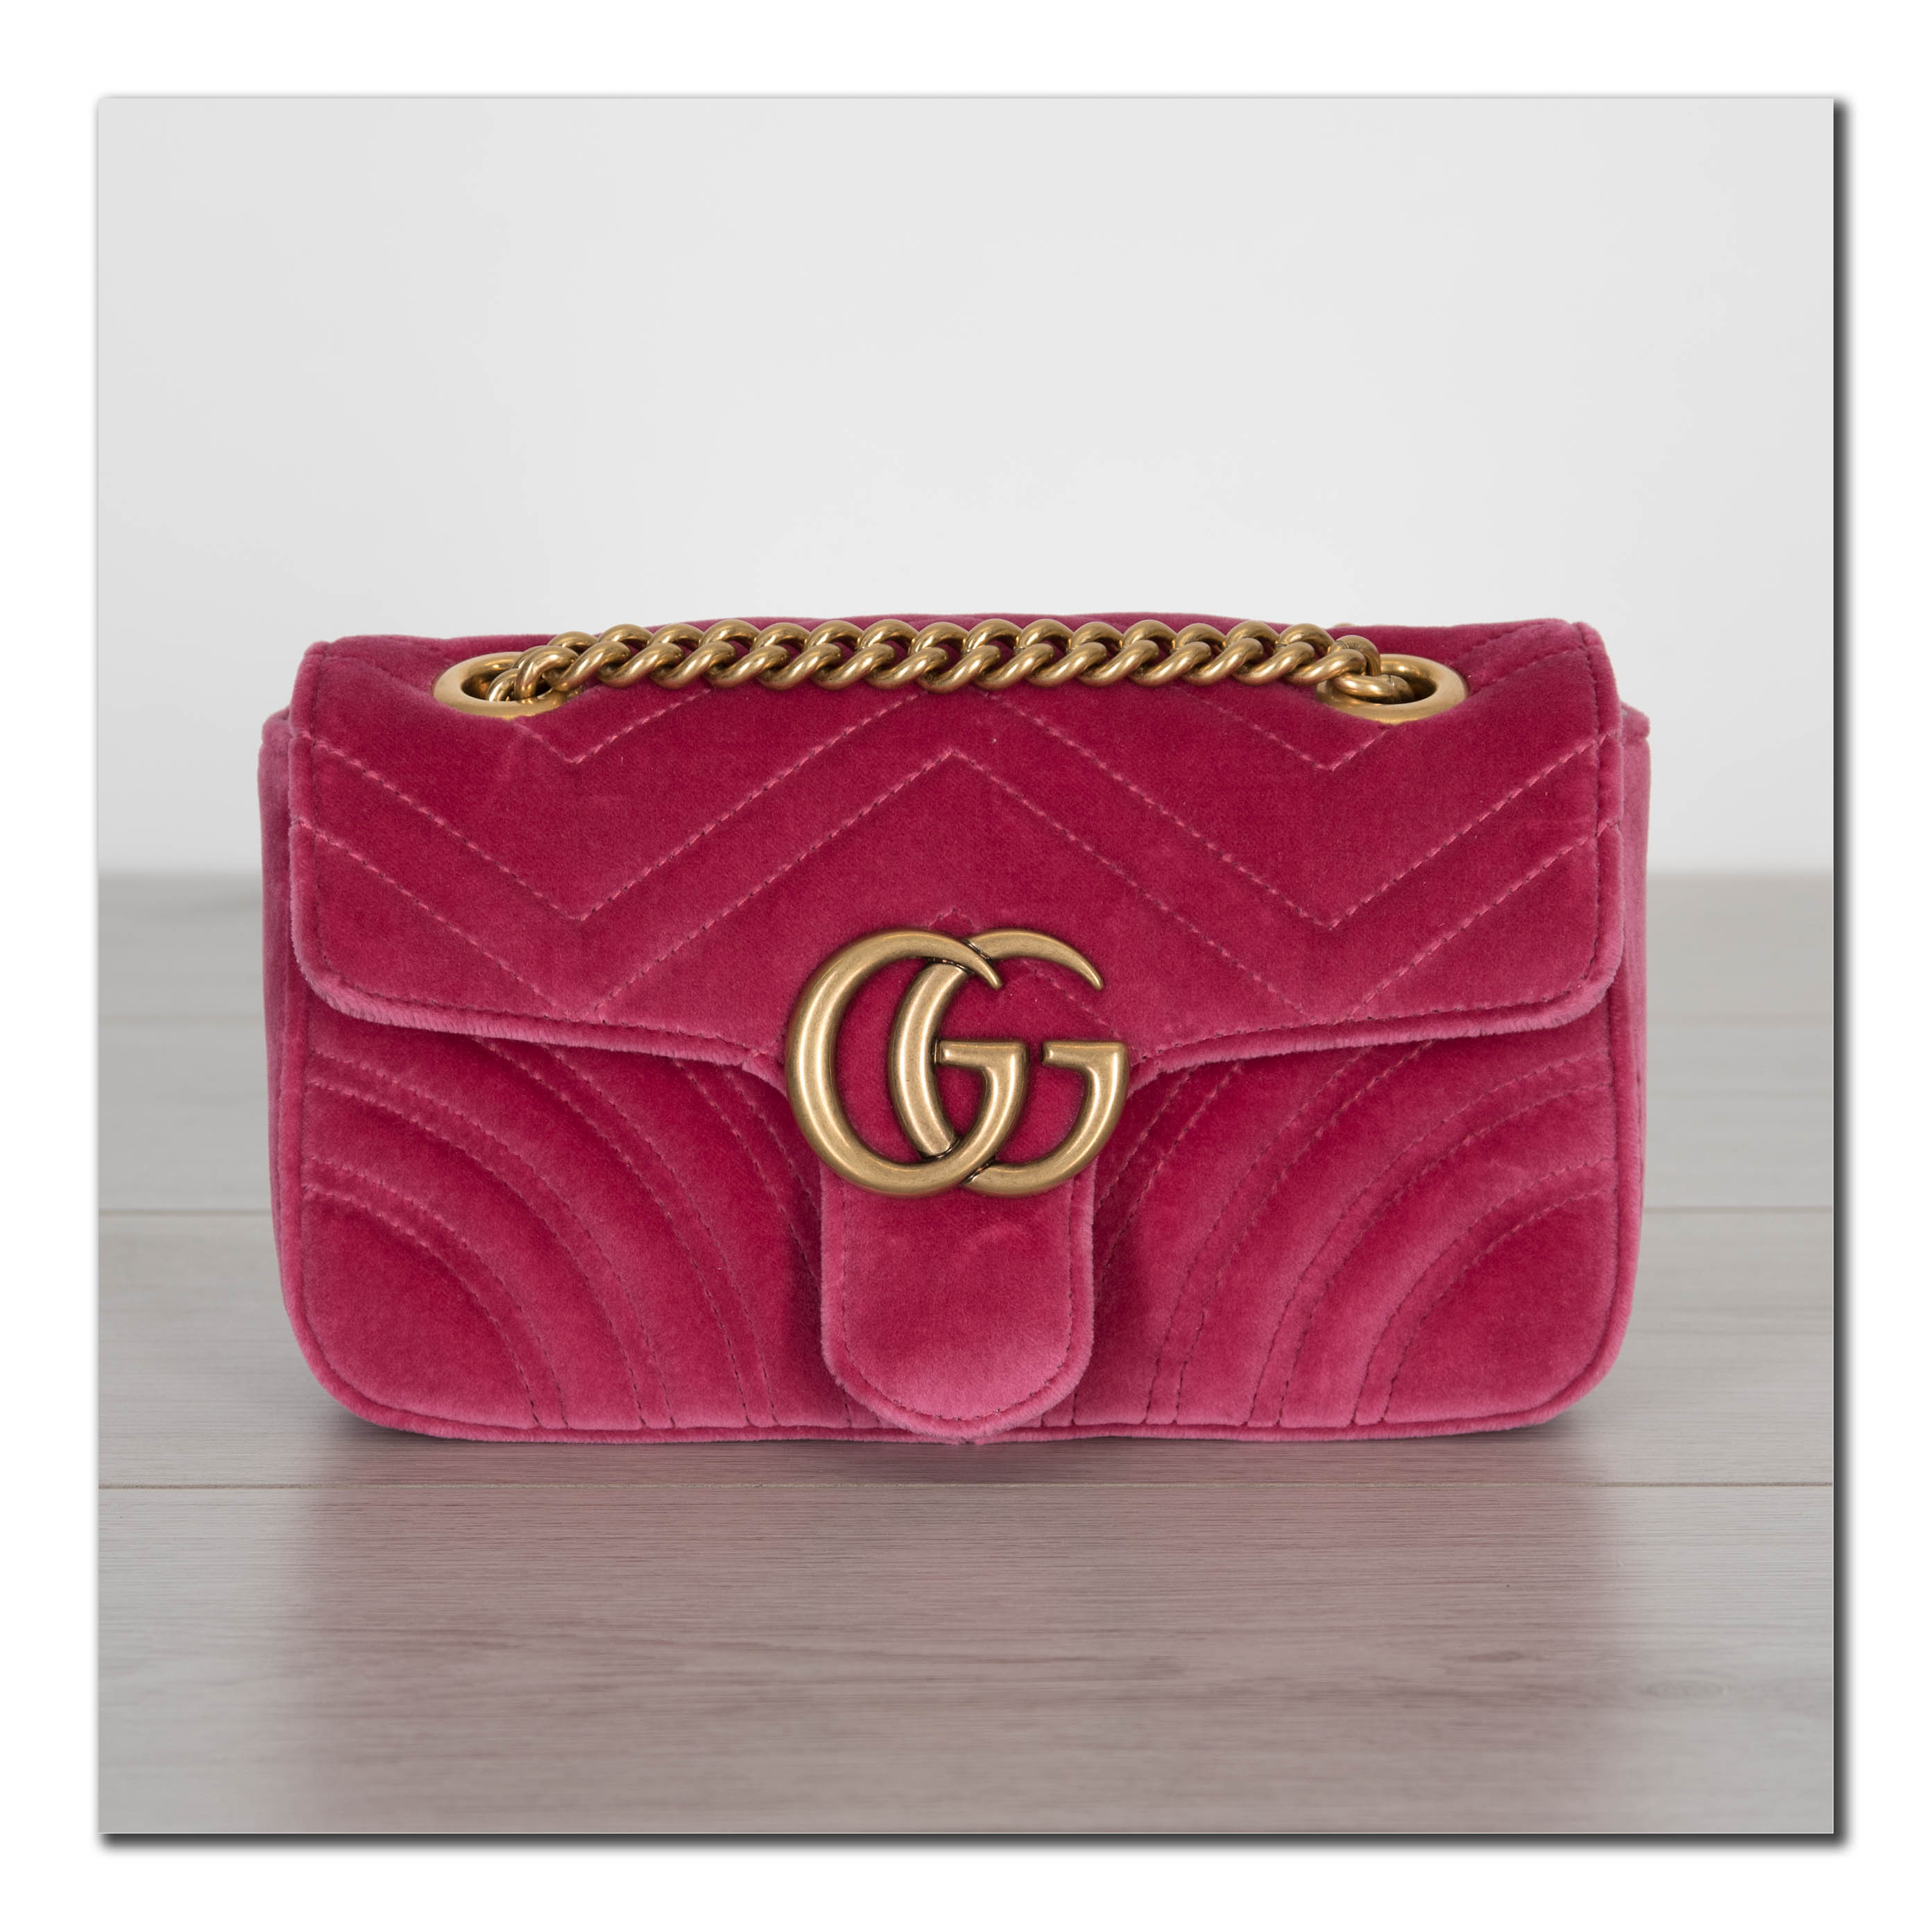 738b5dd50ef4 GUCCI 1590$ Authentic New Mini GG Marmont Shoulder Bag In Pink ...